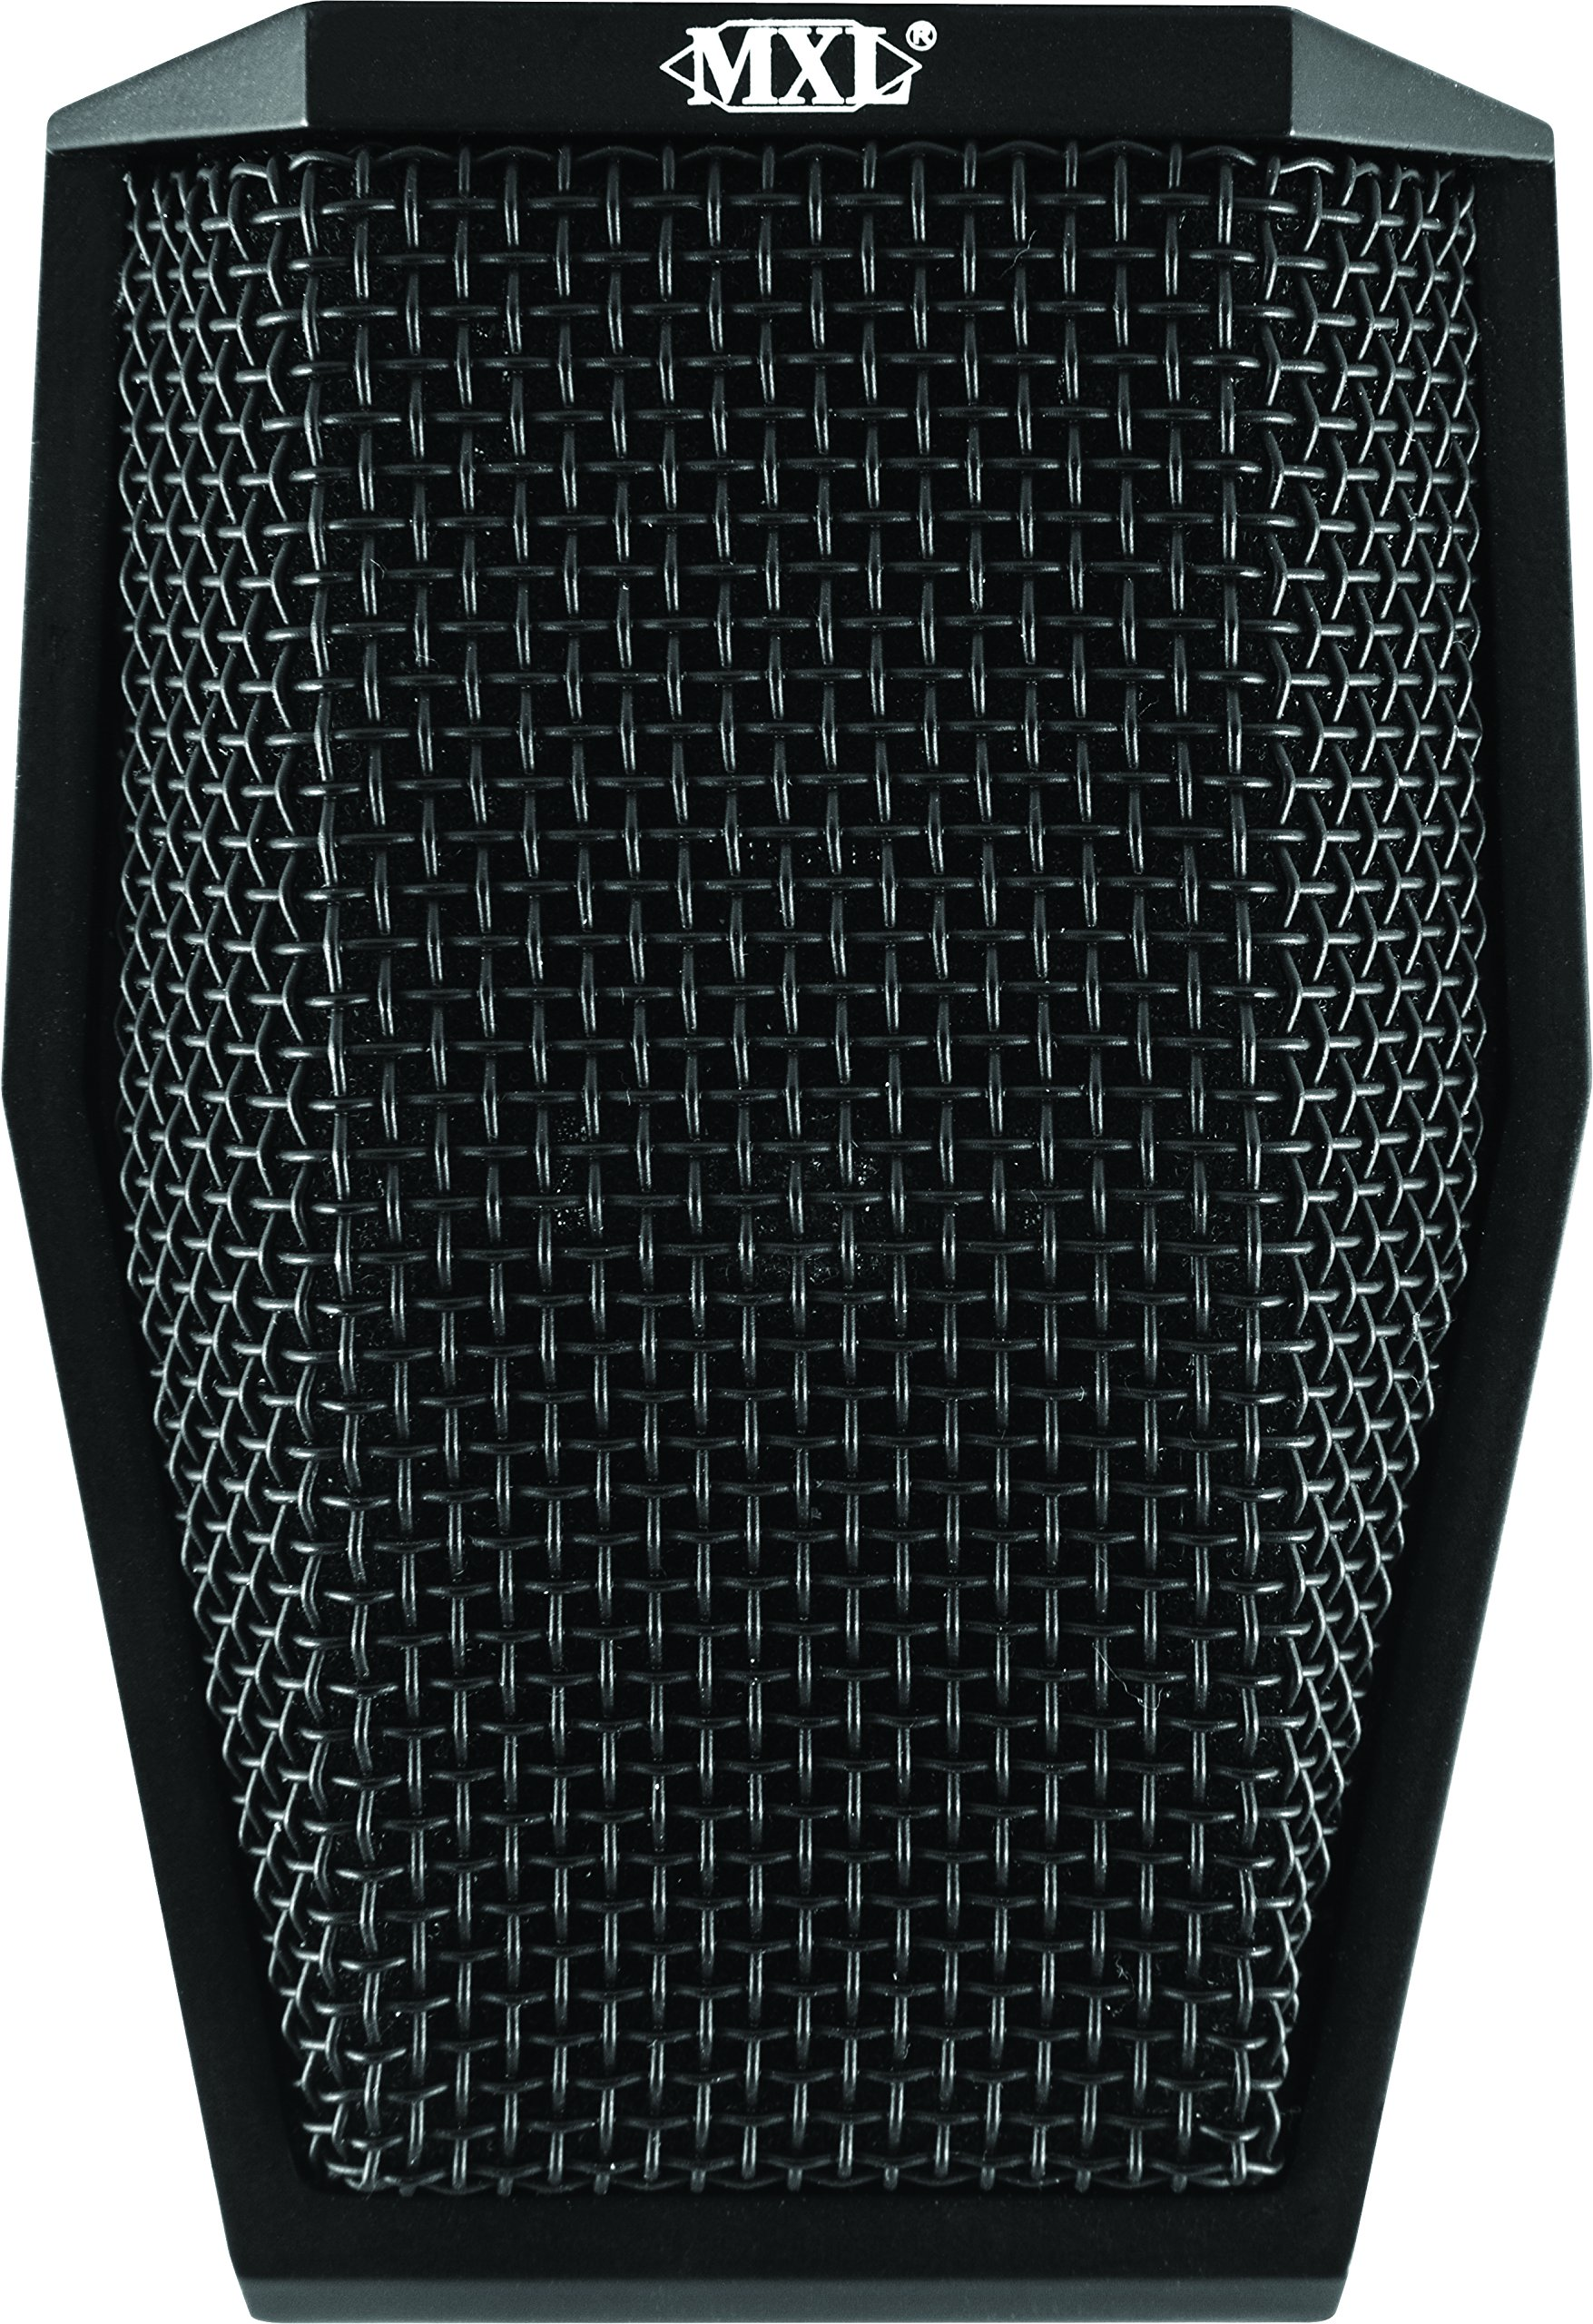 MXL AC404 USB Conference Microphone by MXL Mics (Image #3)